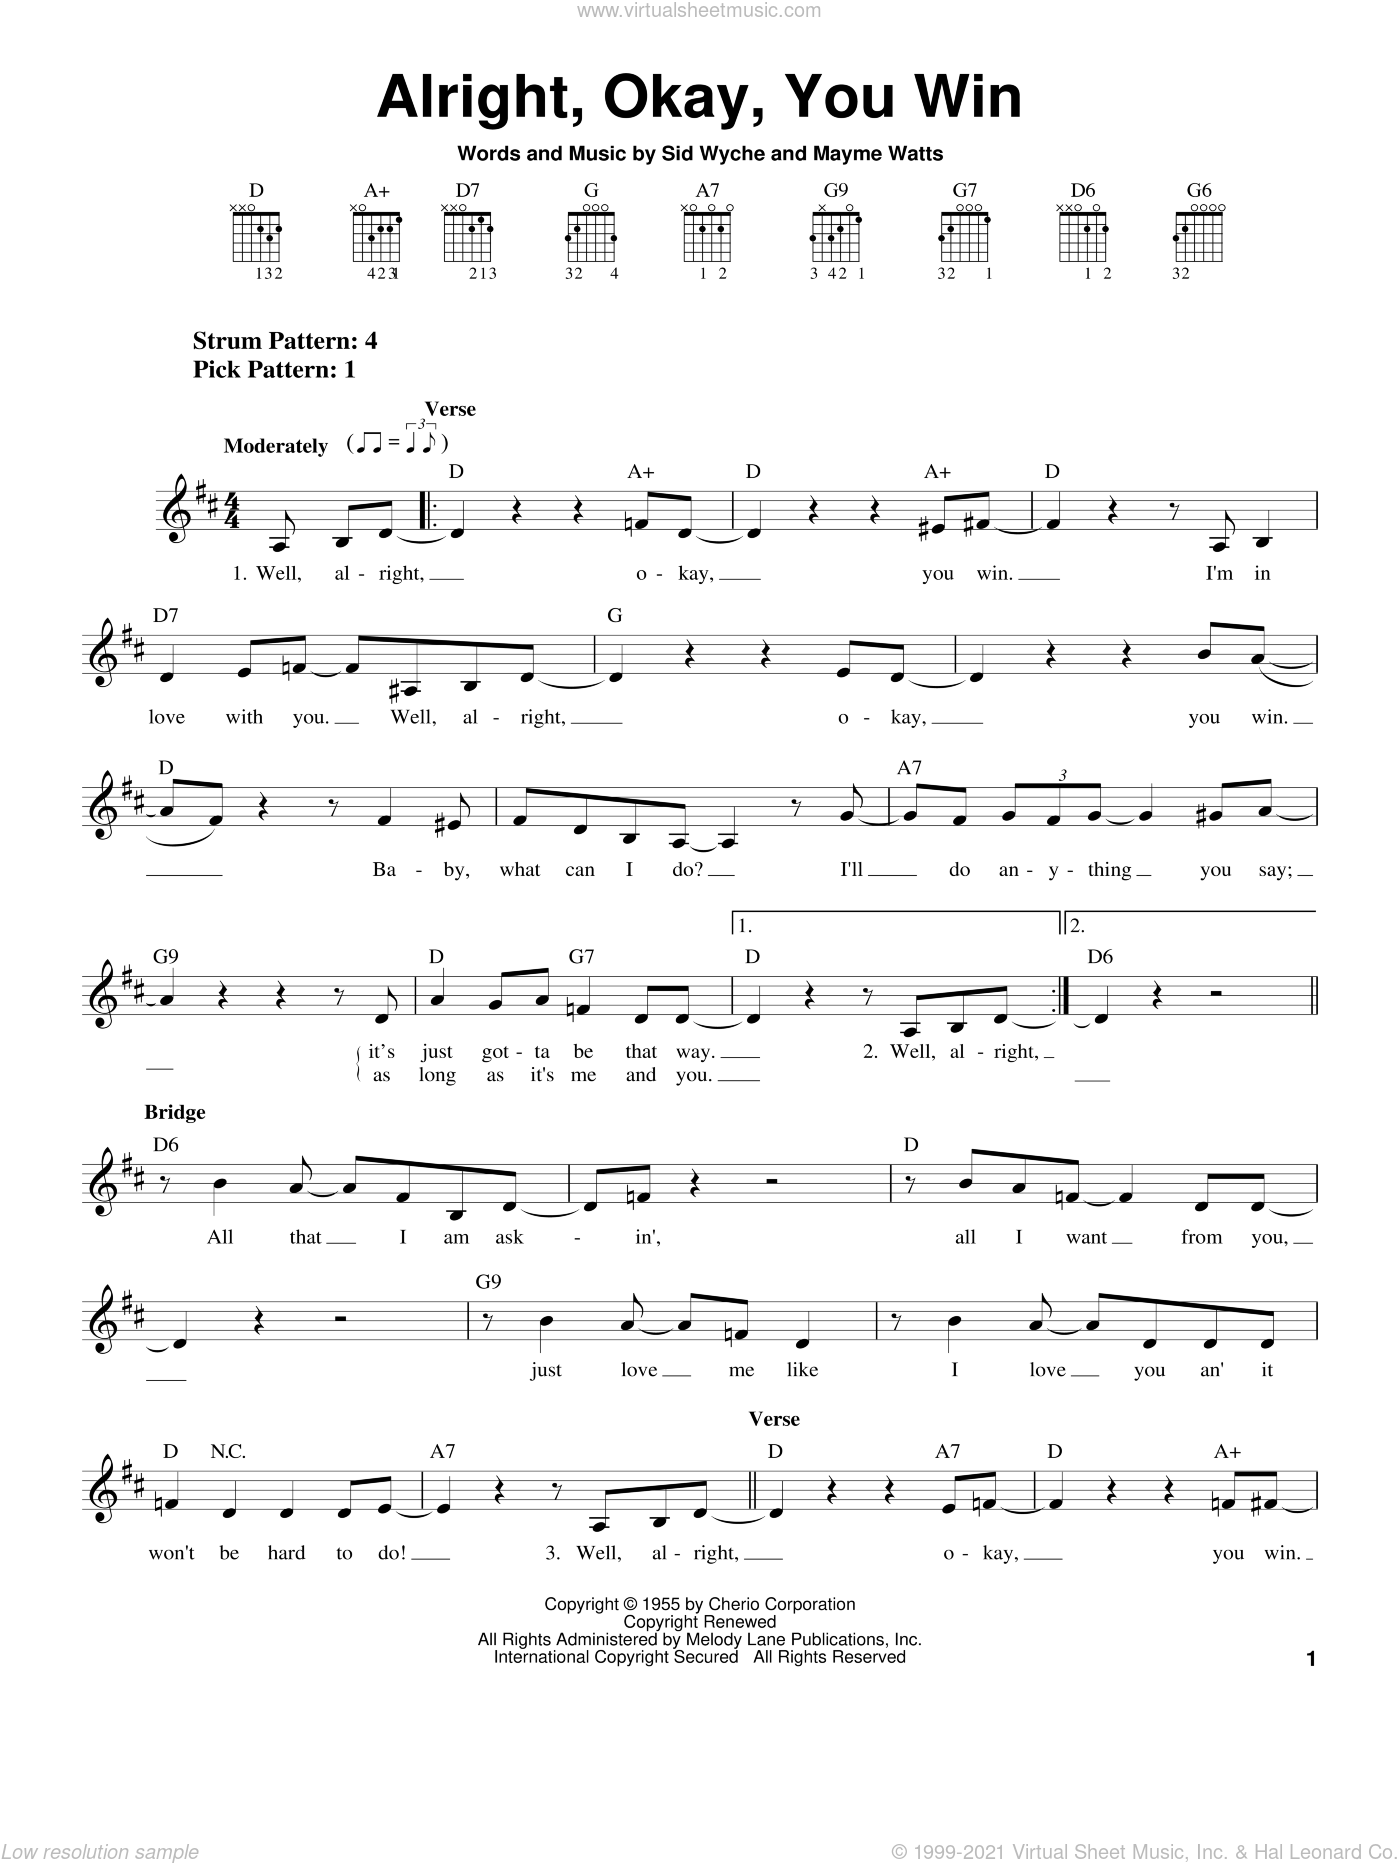 Alright, Okay, You Win sheet music for guitar solo (chords) by Sid Wyche